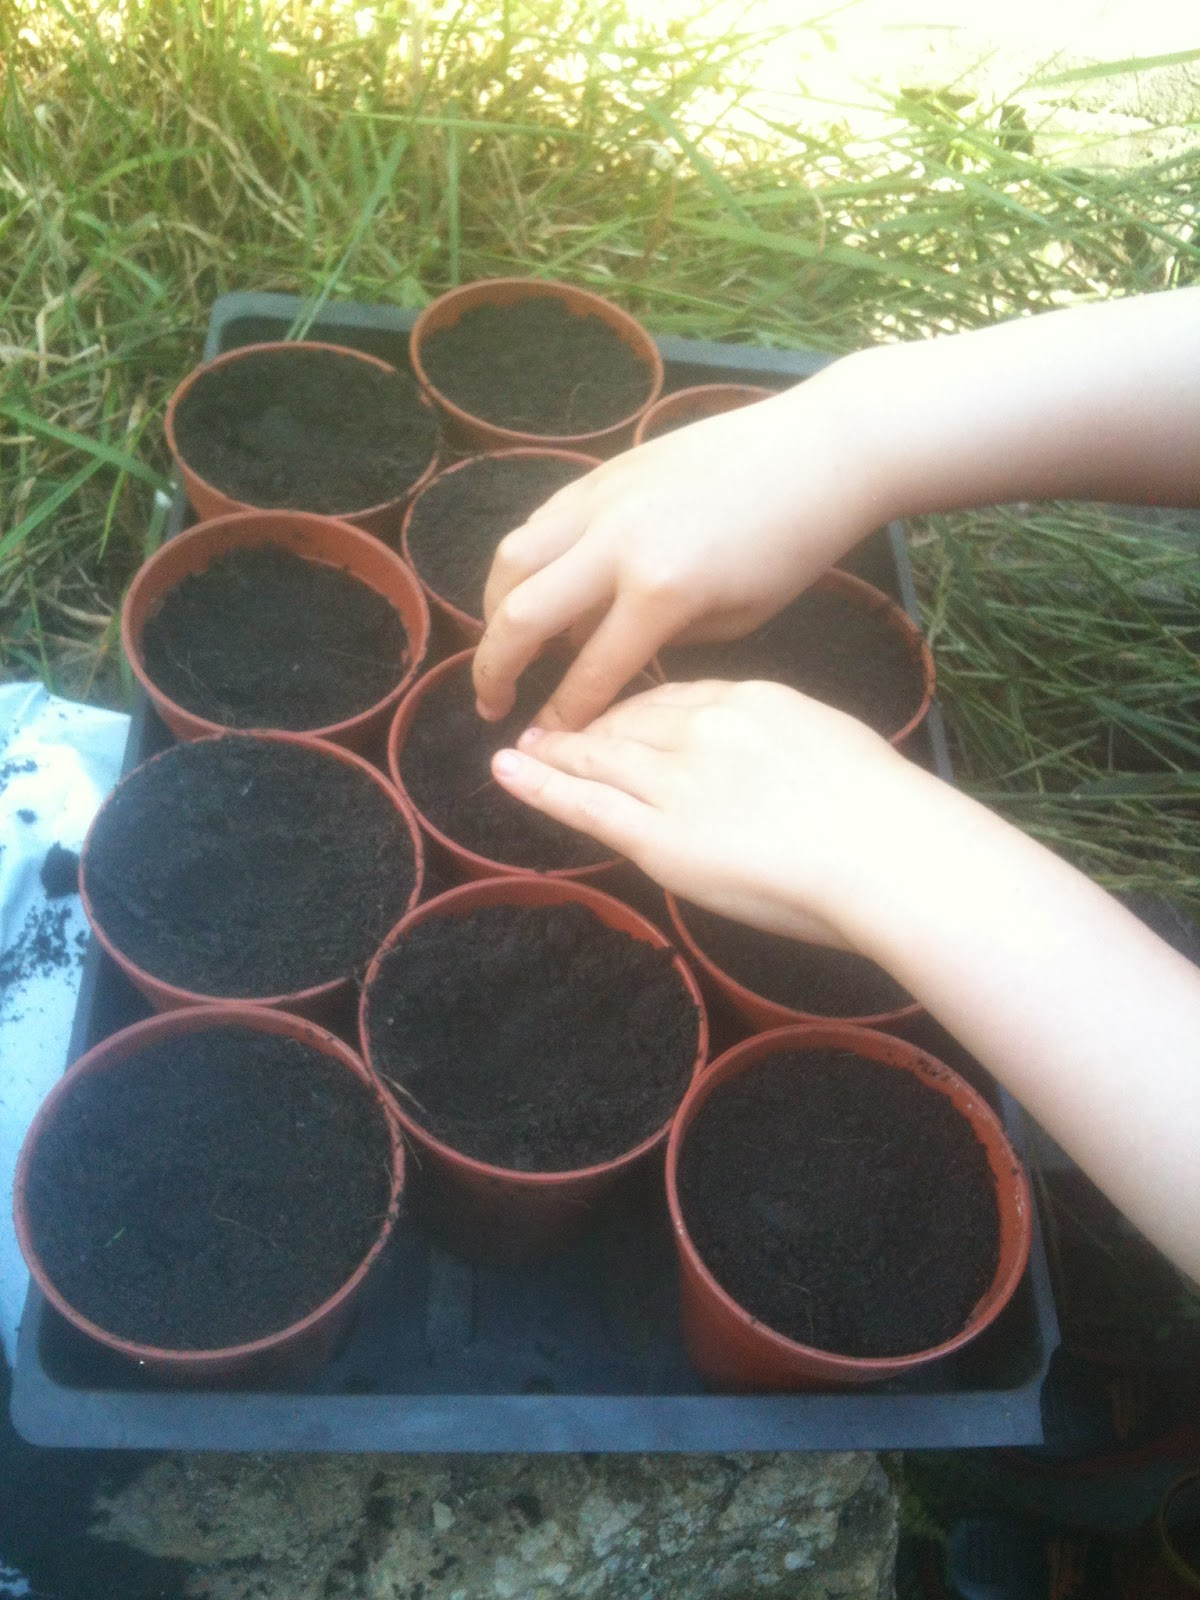 Sowing beans with children